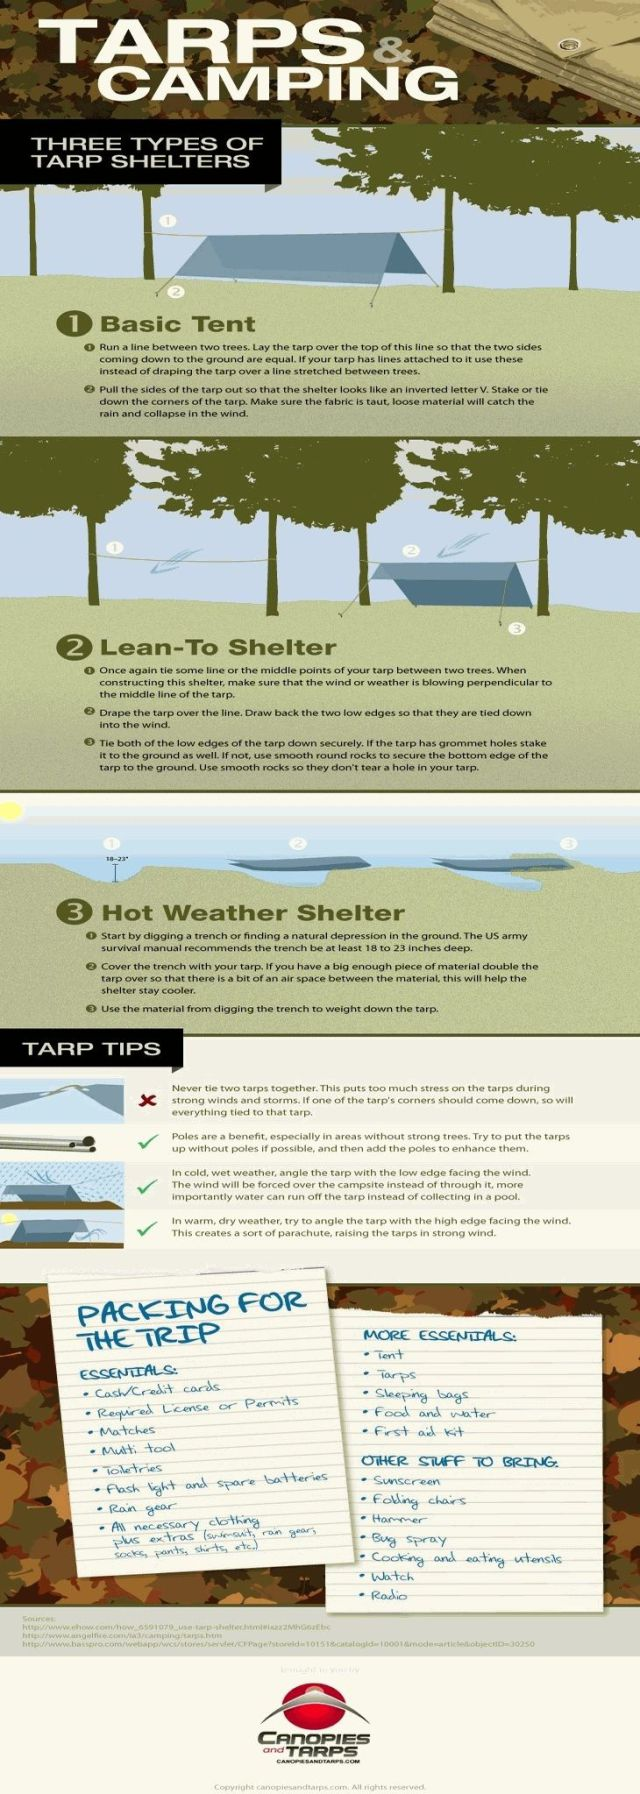 The Essential DIY Guide to Camping